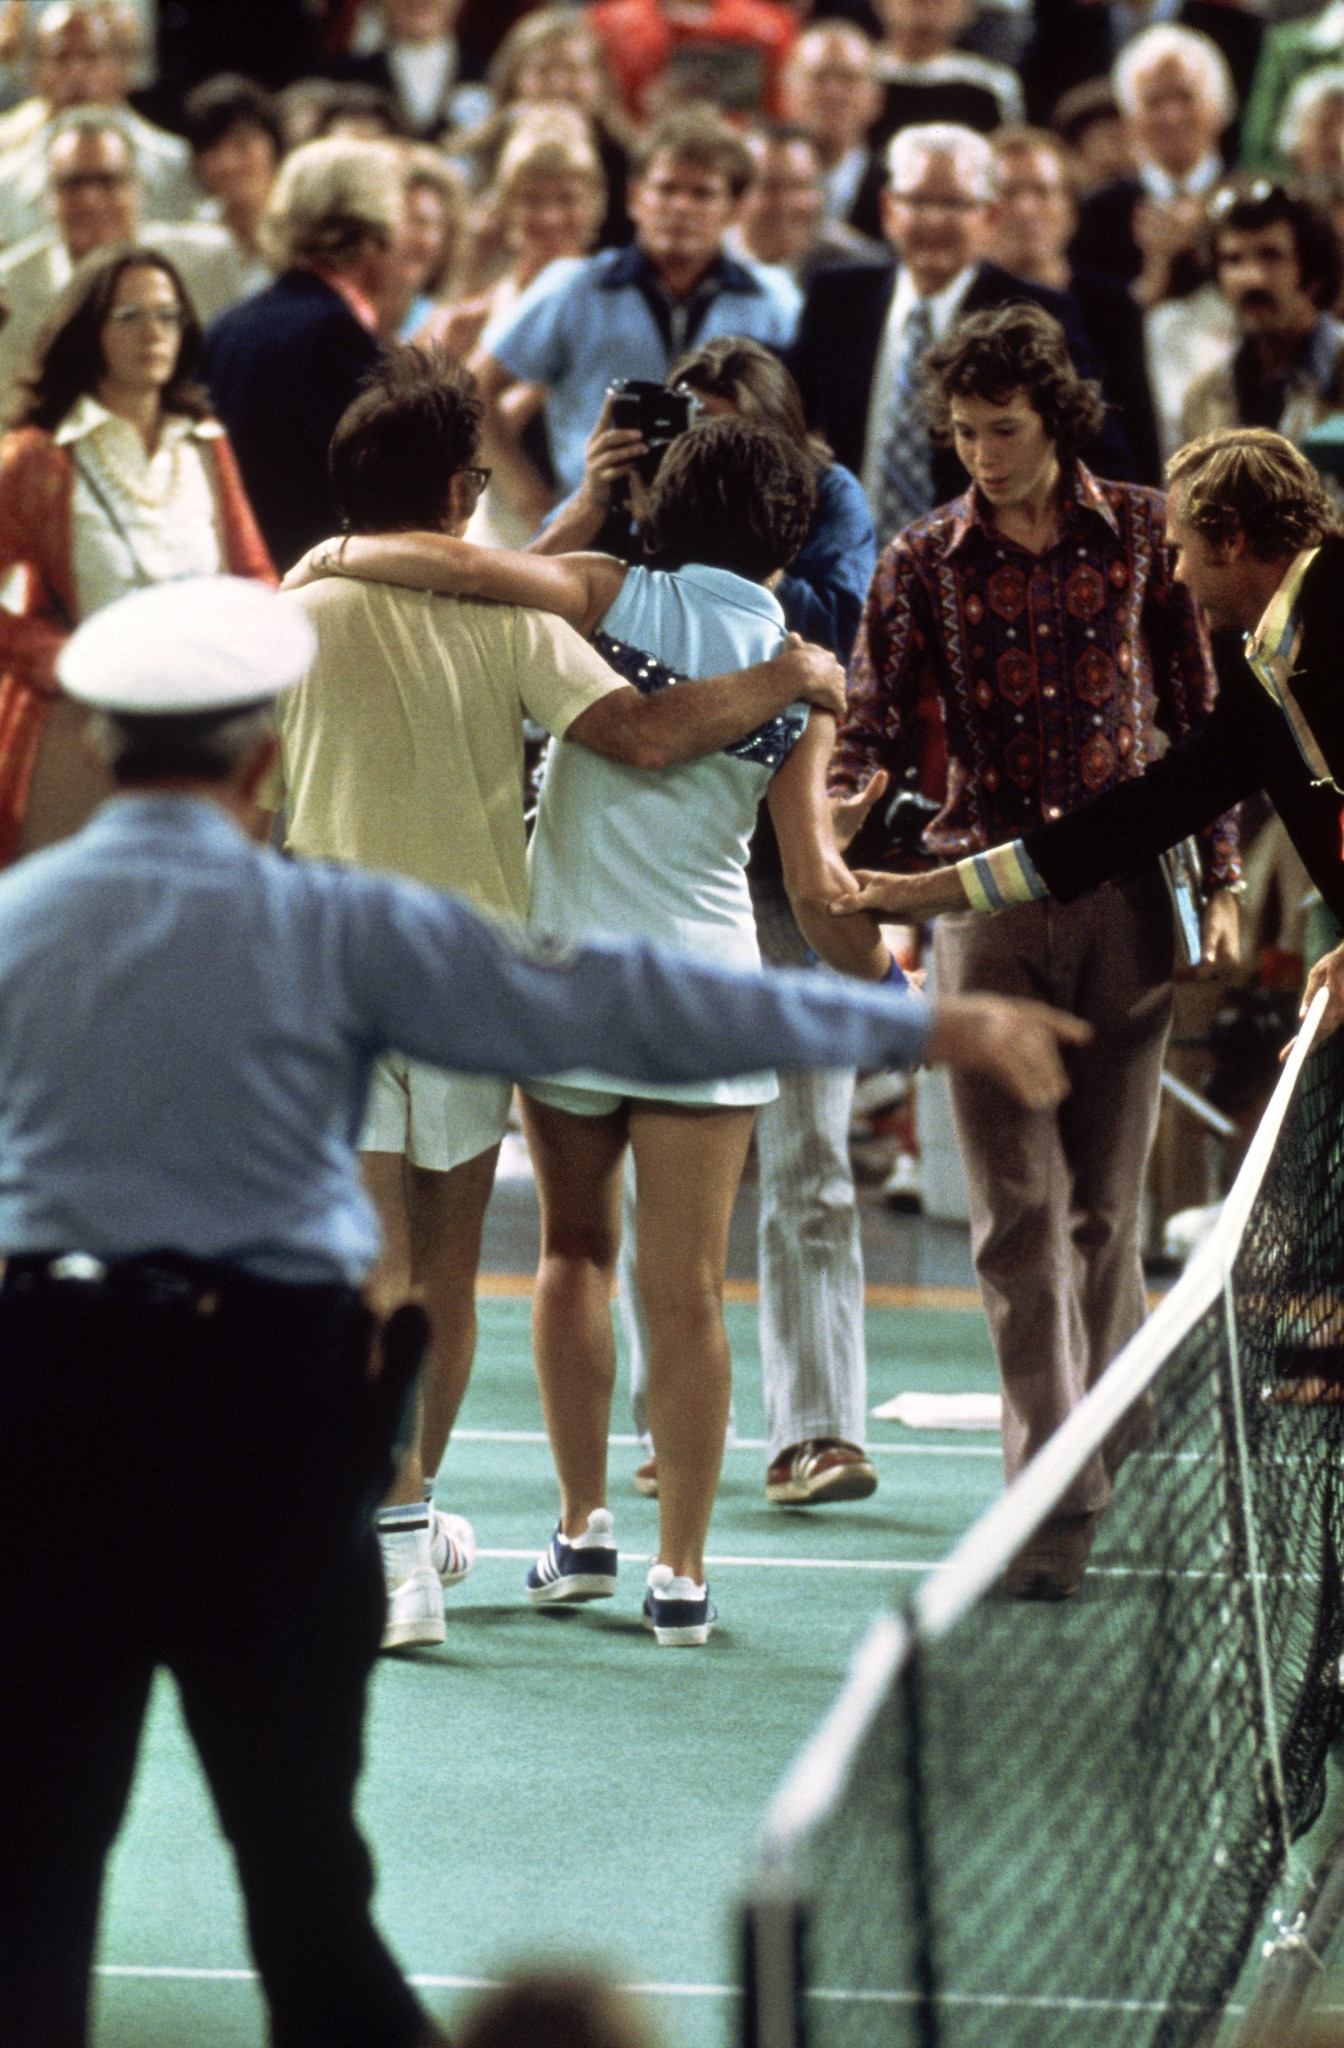 Bobby Riggs and Billie Jean King leave the Houston Astrodome court after the latter's 6-4, 6-3, 6-3 win ©Getty Images